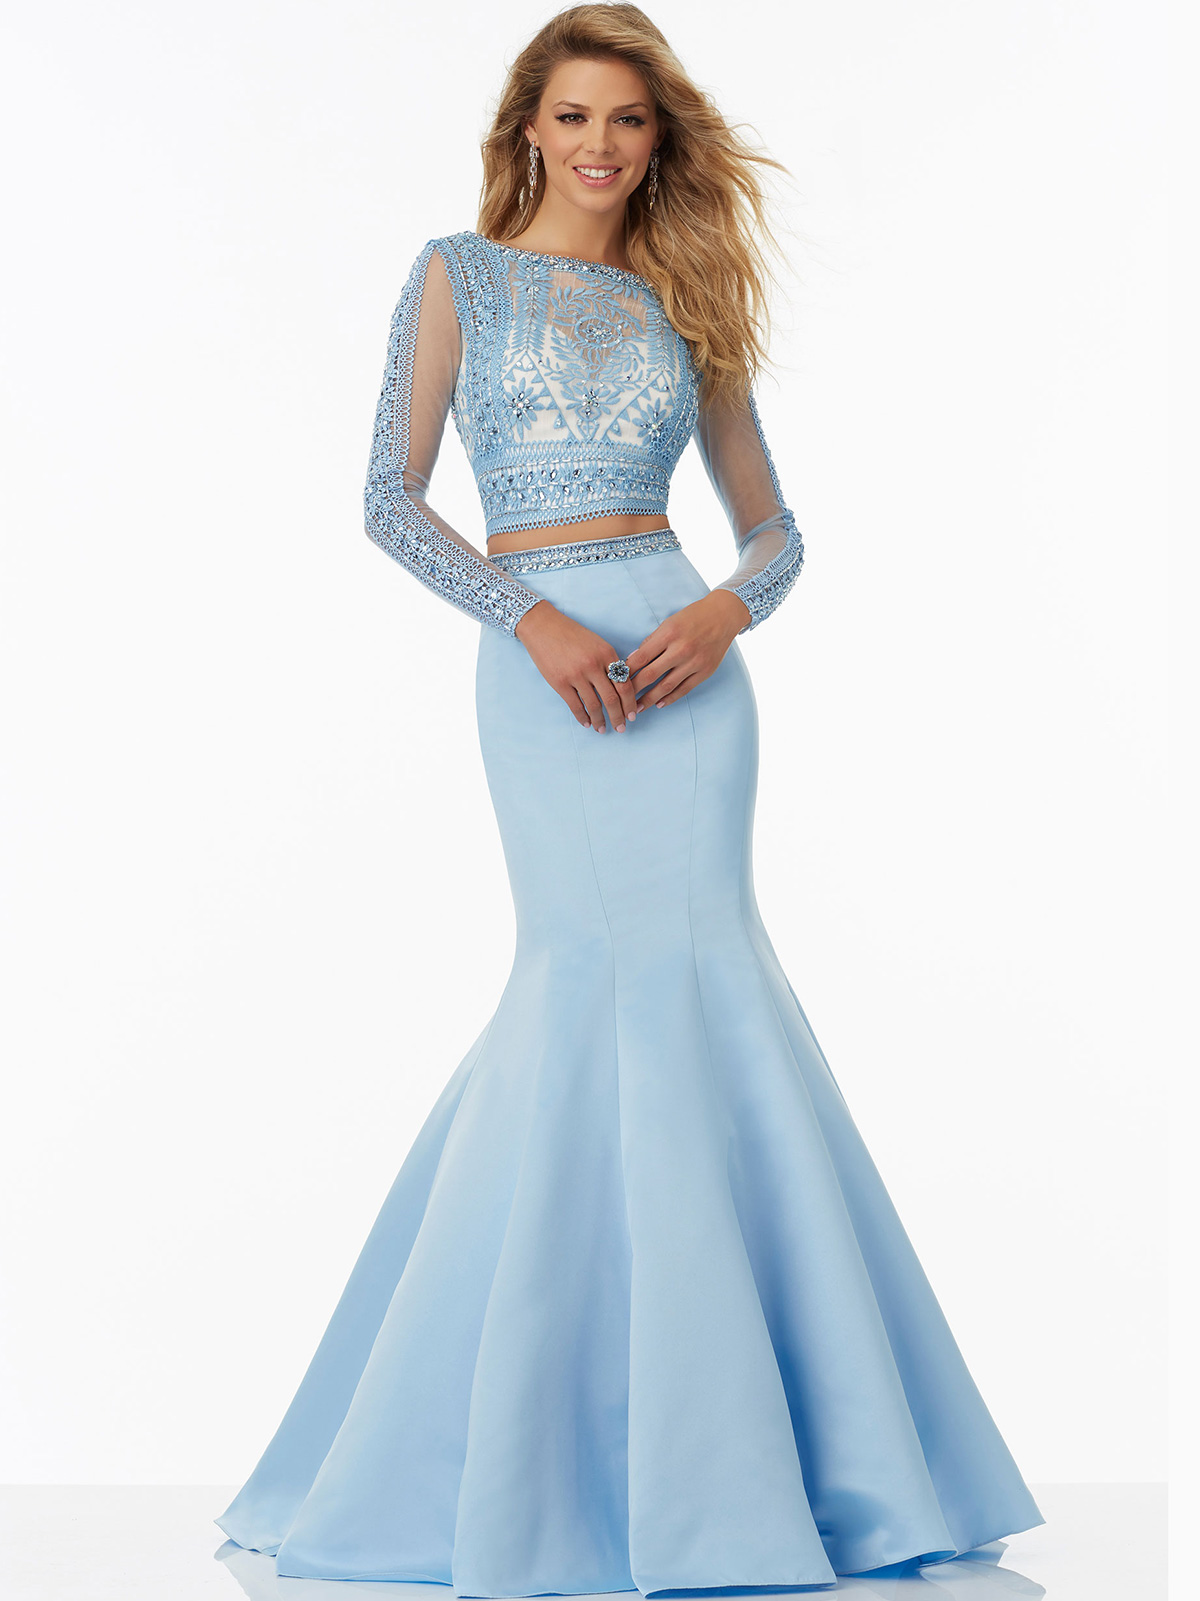 Mori Lee 99029 Long Sleeved Mermaid Prom Gown|DressProm.net